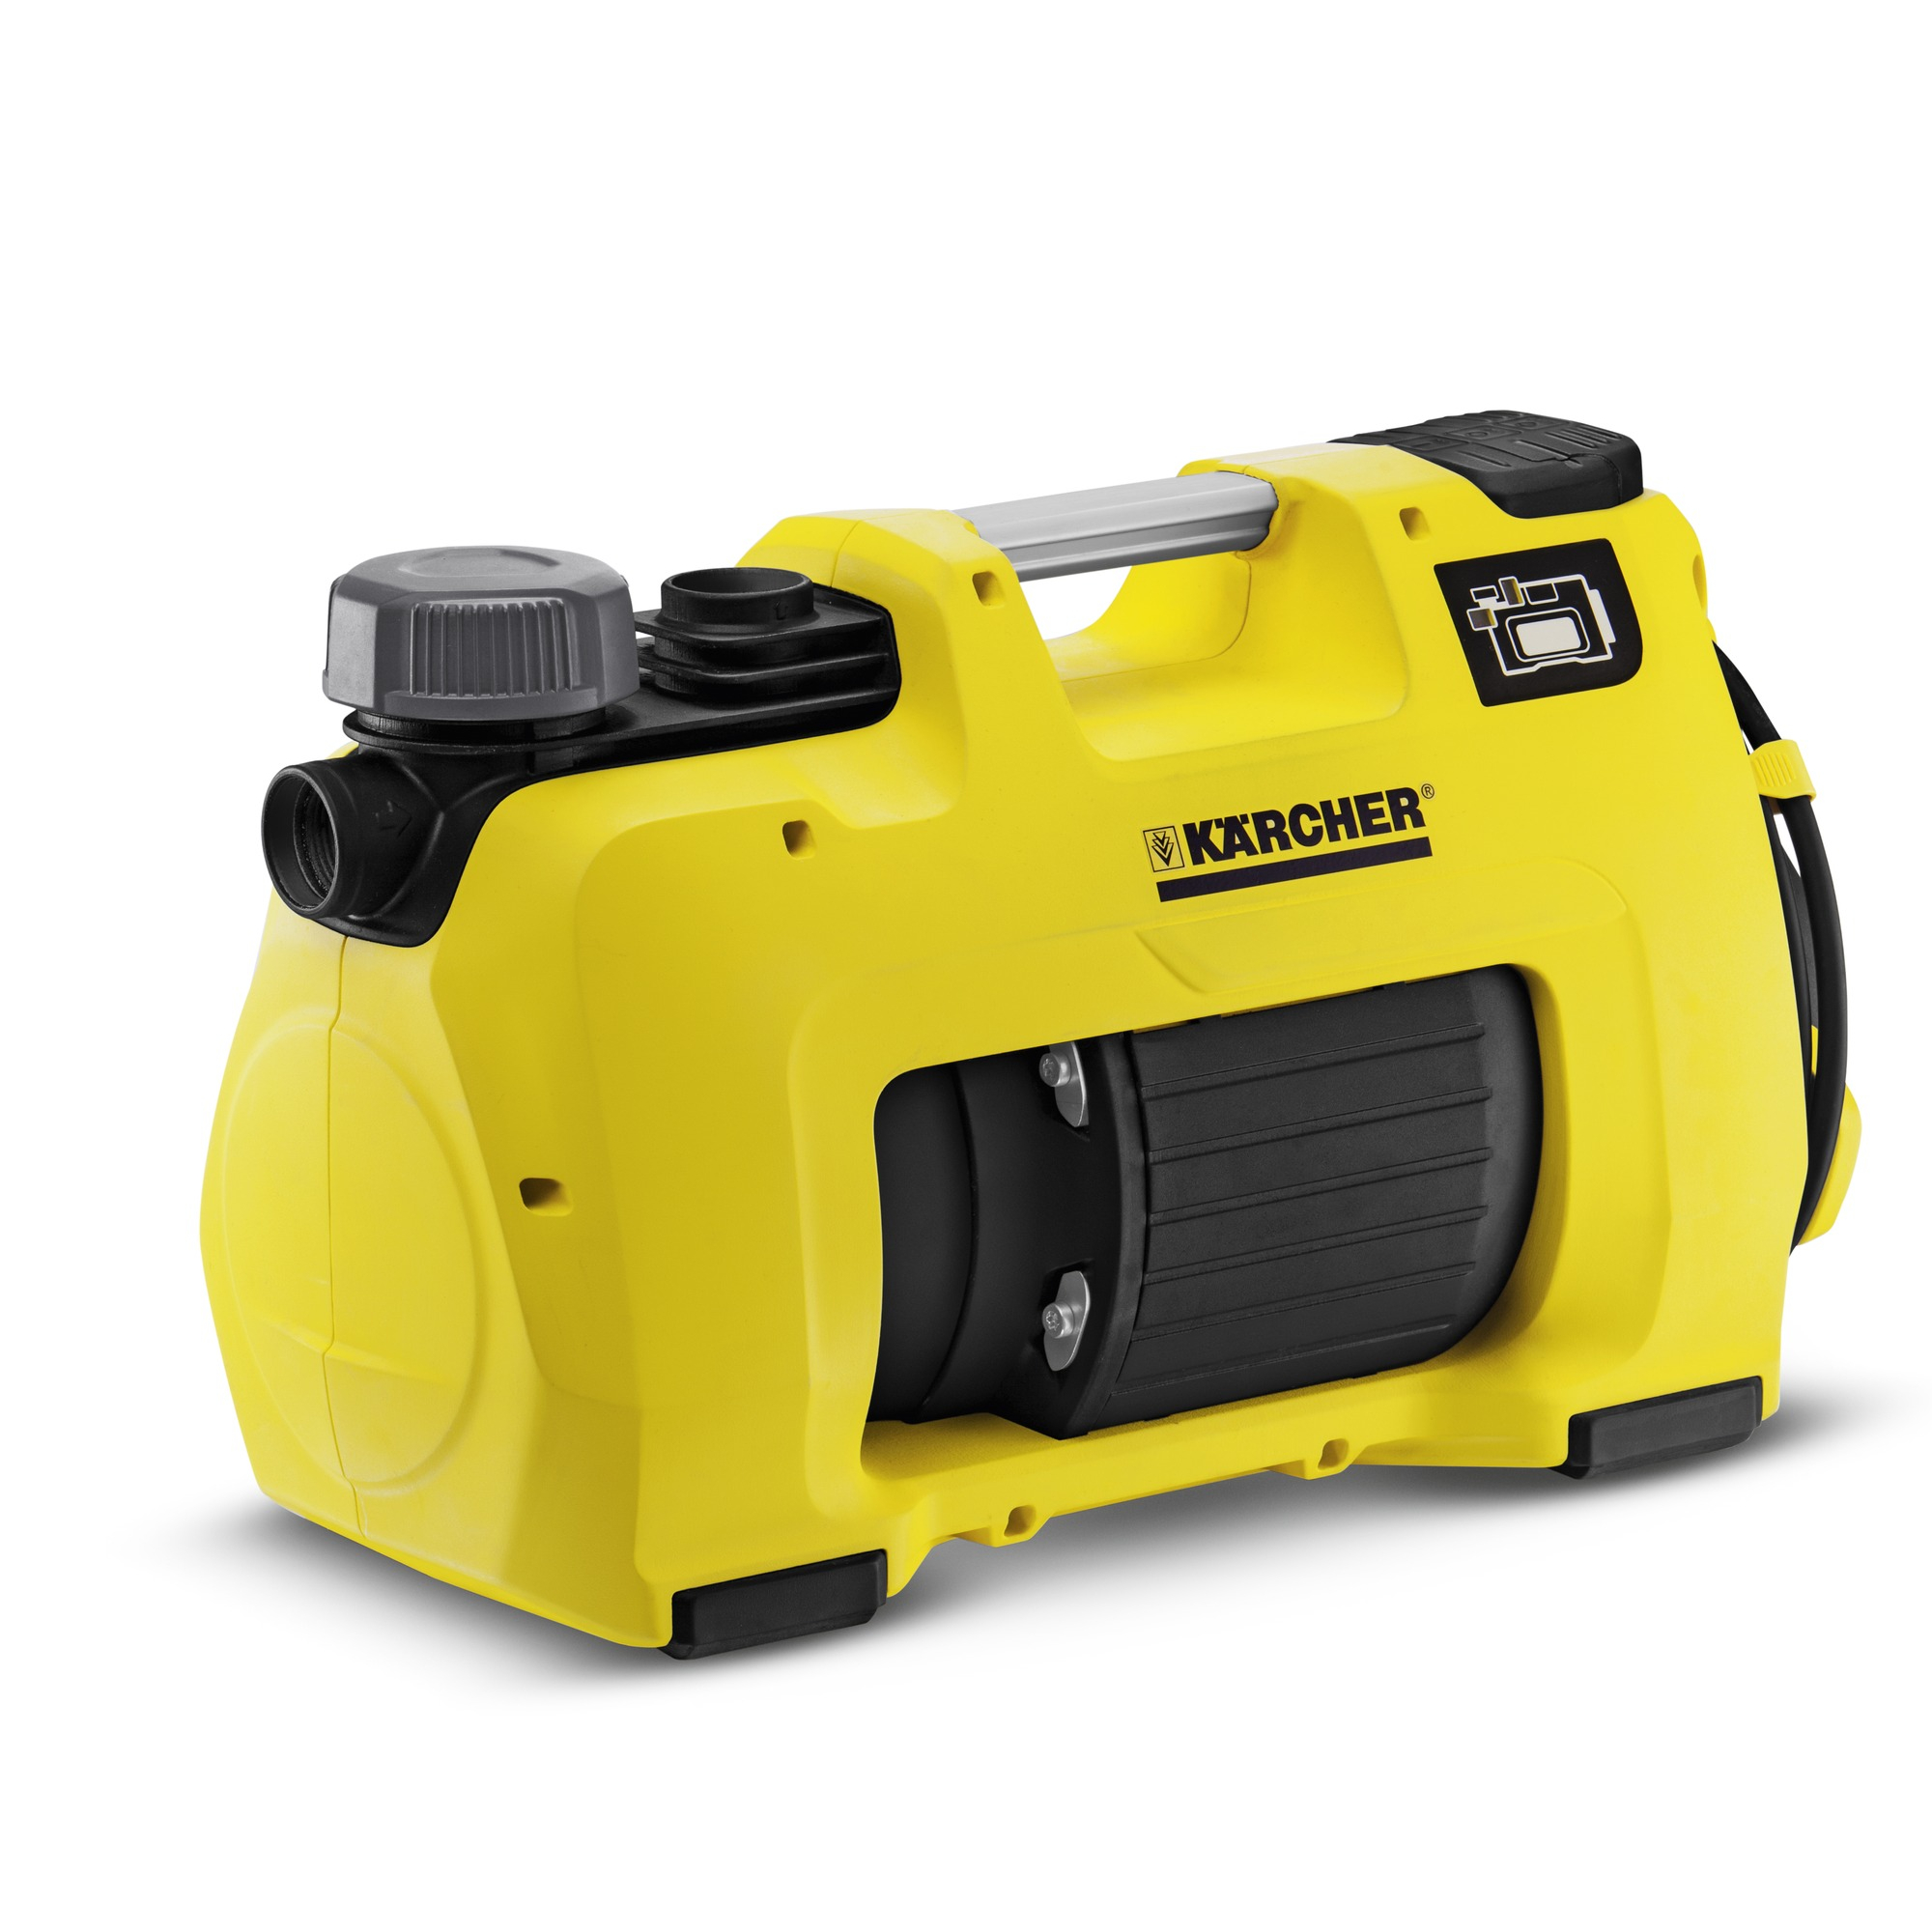 BP 3 Home & Garden 1.645-353.0 KARCHER - KARCHER PREMIER CENTER